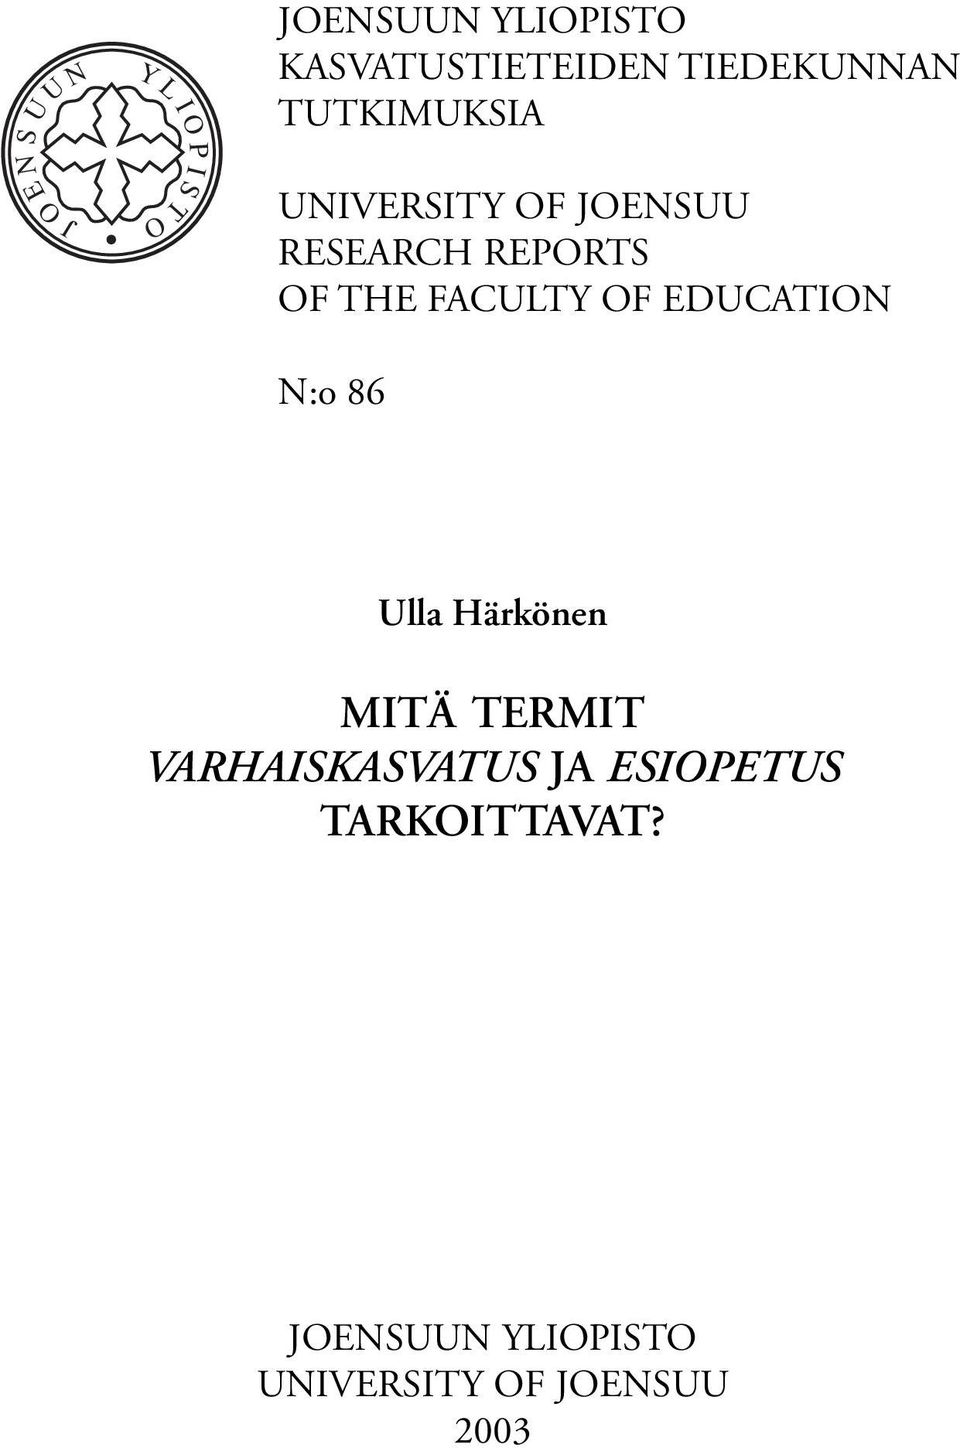 THE FACULTY OF EDUCATION N:o 86 Ulla Härkönen MITÄ TERMIT